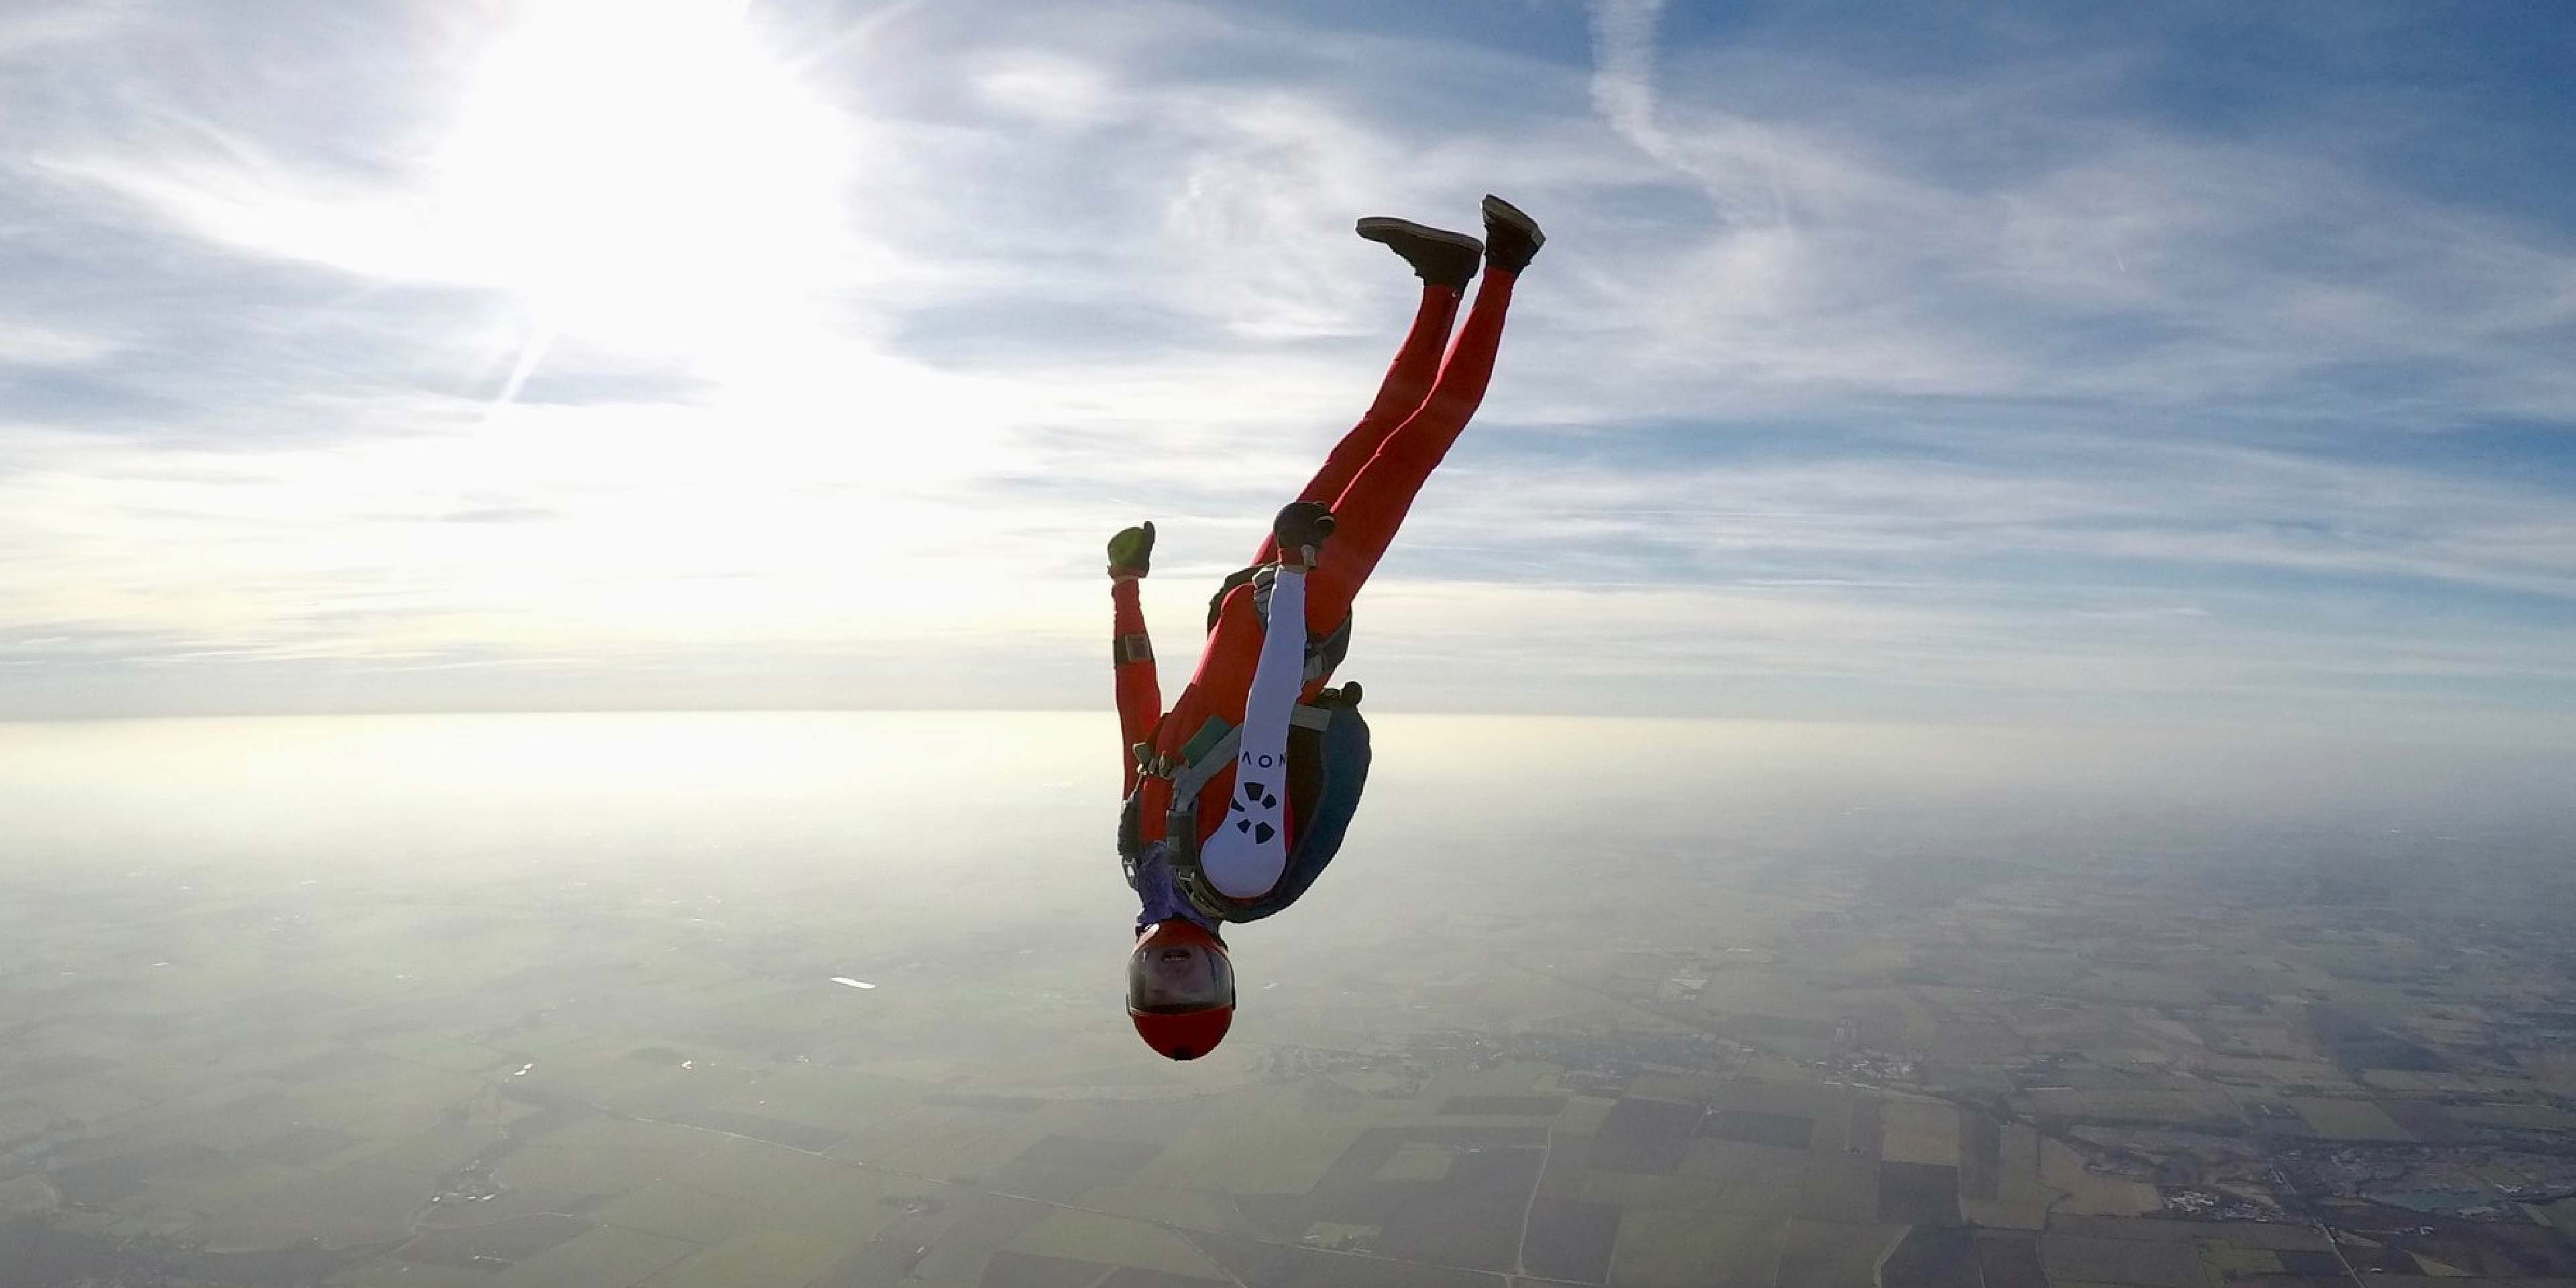 A photograph of a skydiver falling through the sky in another position, the logo is visible in black on white on his arm.